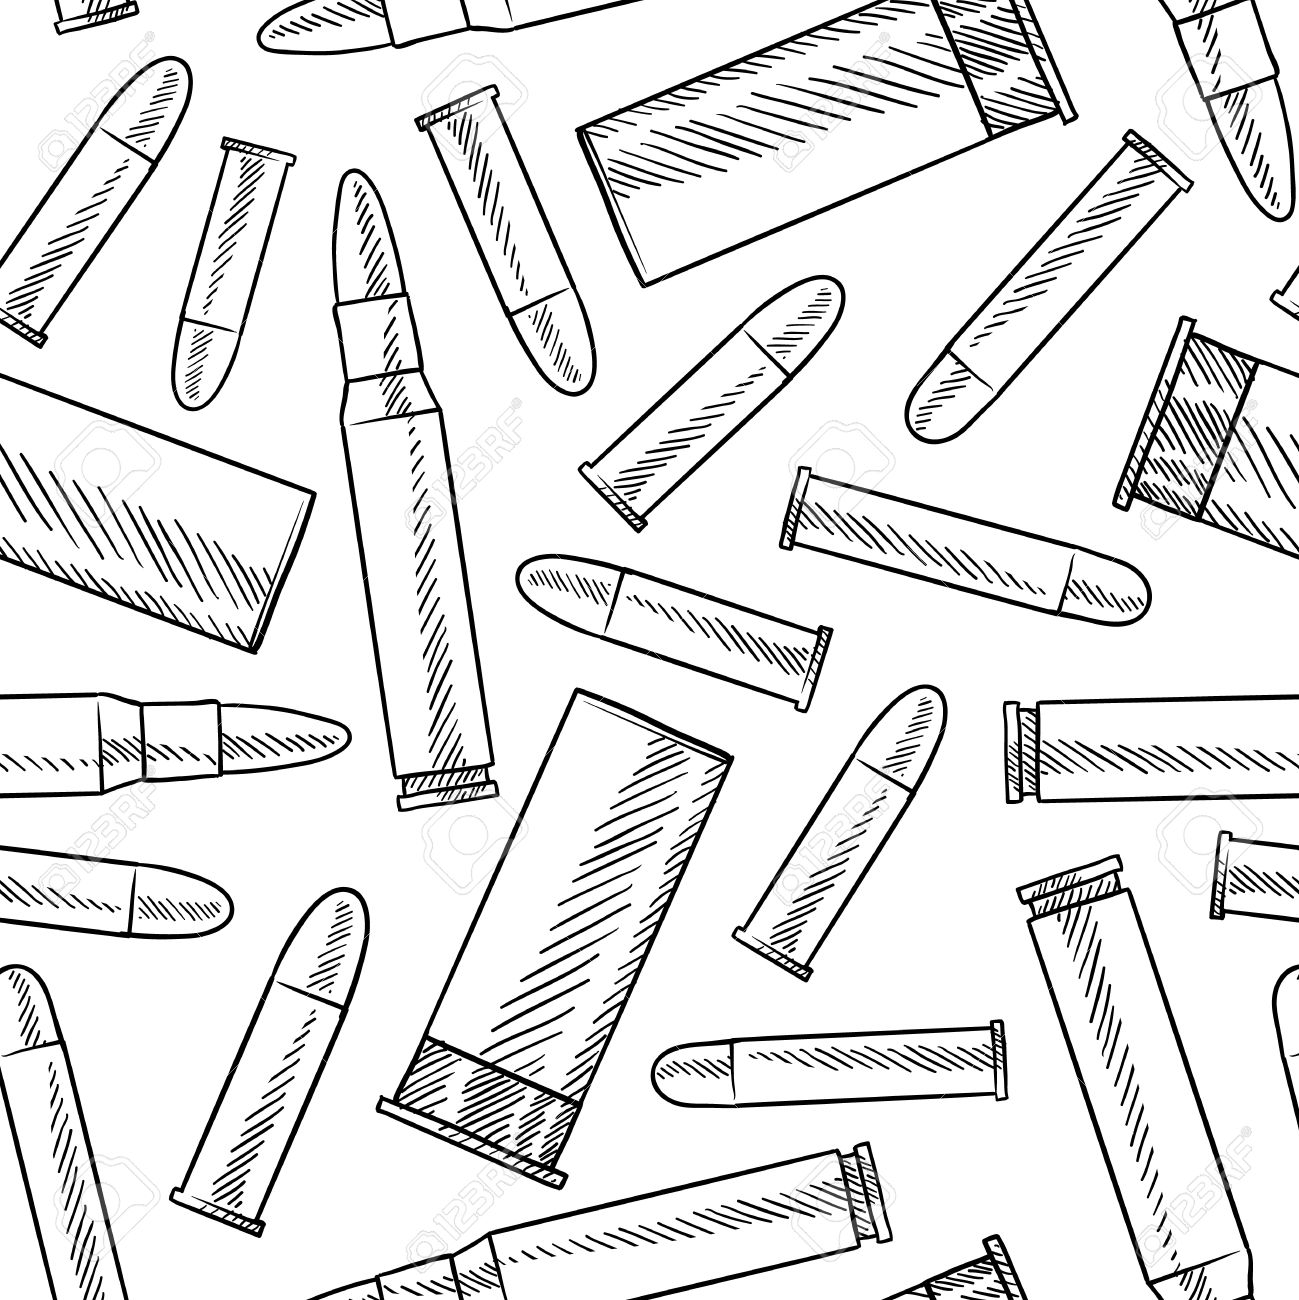 1299x1300 Doodle Style Seamless Bullets Background Illustration In Vector